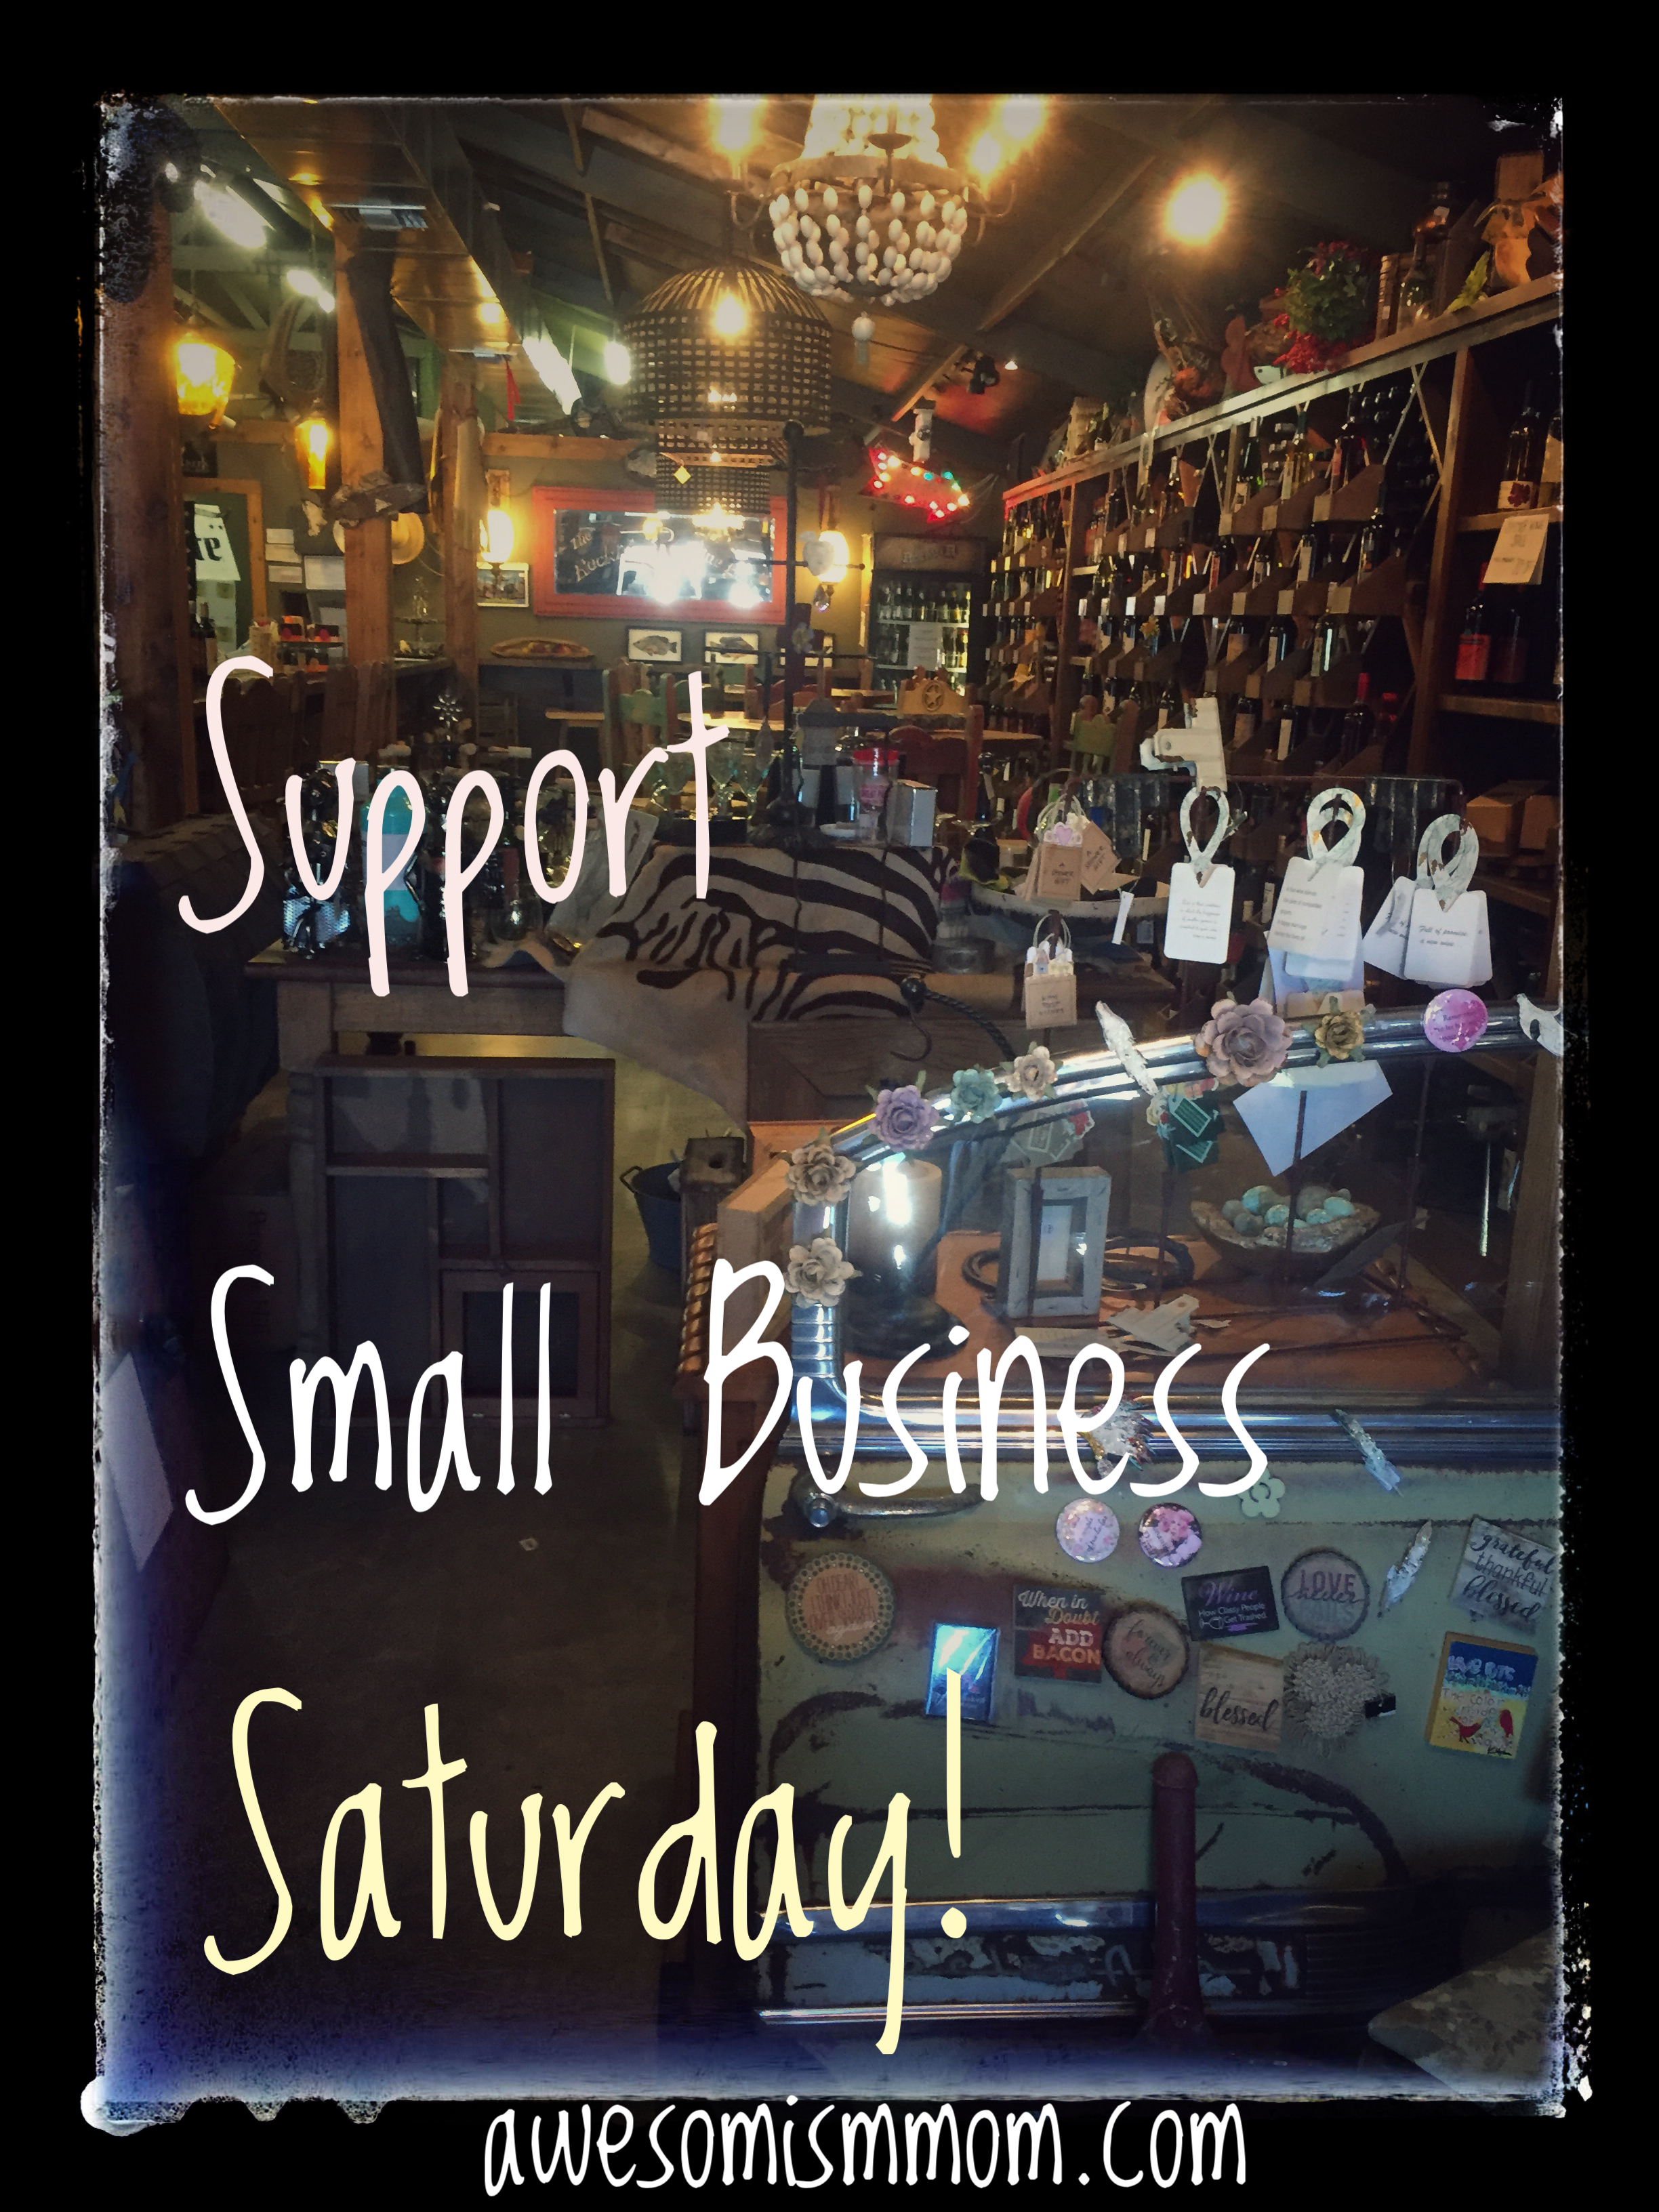 Our Small Business Saturday